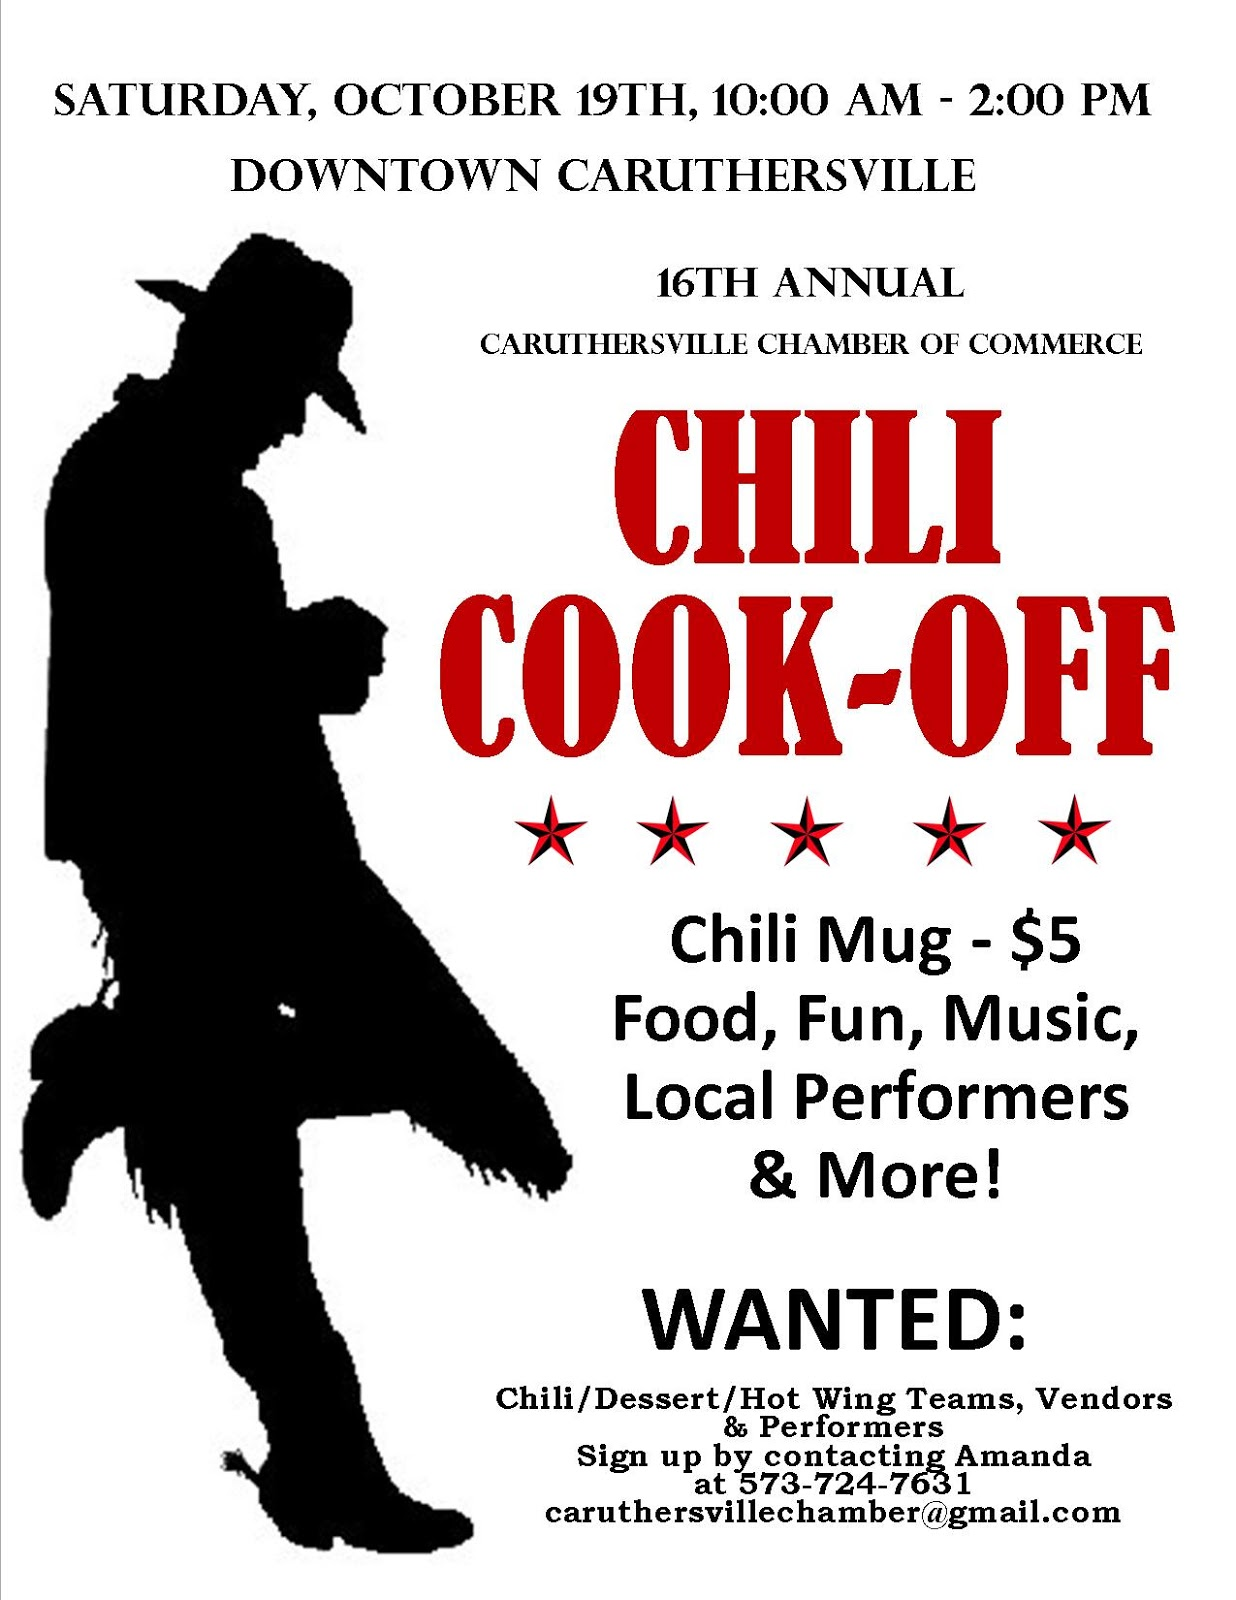 Chili Cookoff Flyers Antaexpocoachingco - Chili cook off flyer template free